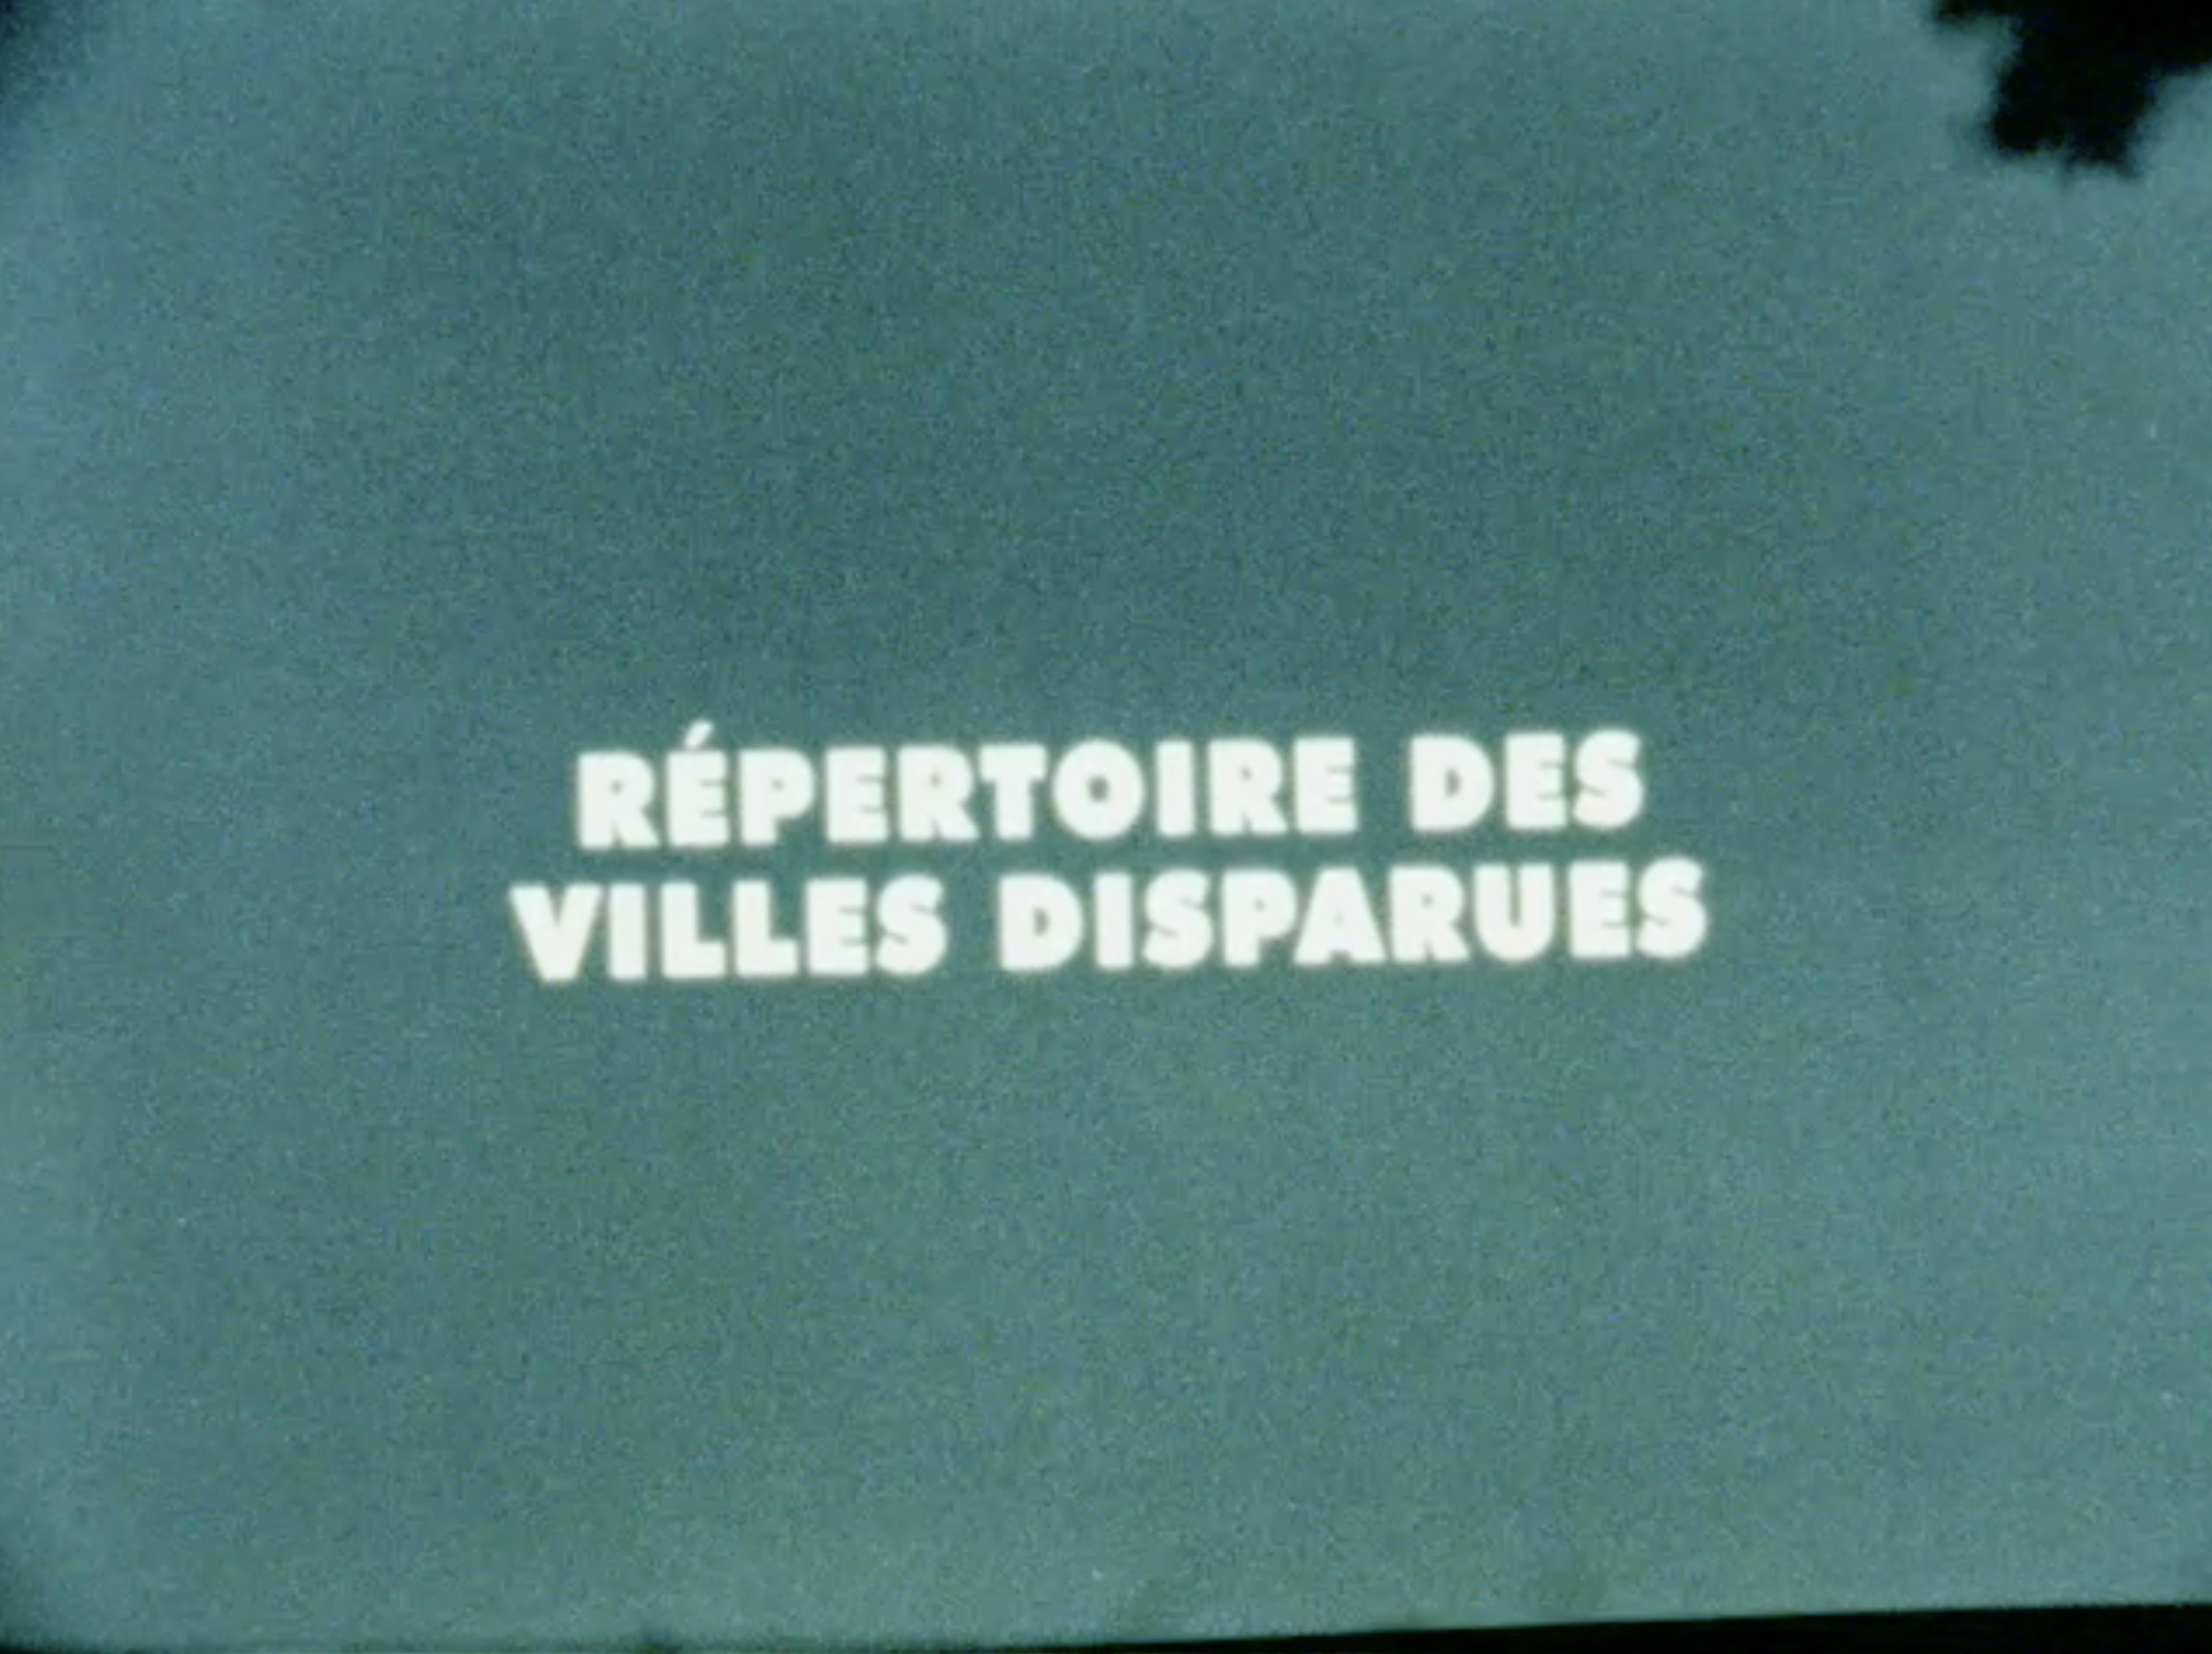 Making Of - RÉPERTOIRE DES VILLES DISPARUES - 2019   4m   Live Action TeasersOn the set of Ghost Town Anthology, a film by Denis Côté. Documented in Super 8 by Matthew Rankin (filming/editing) and Sacha Ratcliffe (sound recording/sound design).Produced by Couzin Films.Distributed by Maison4tiers.